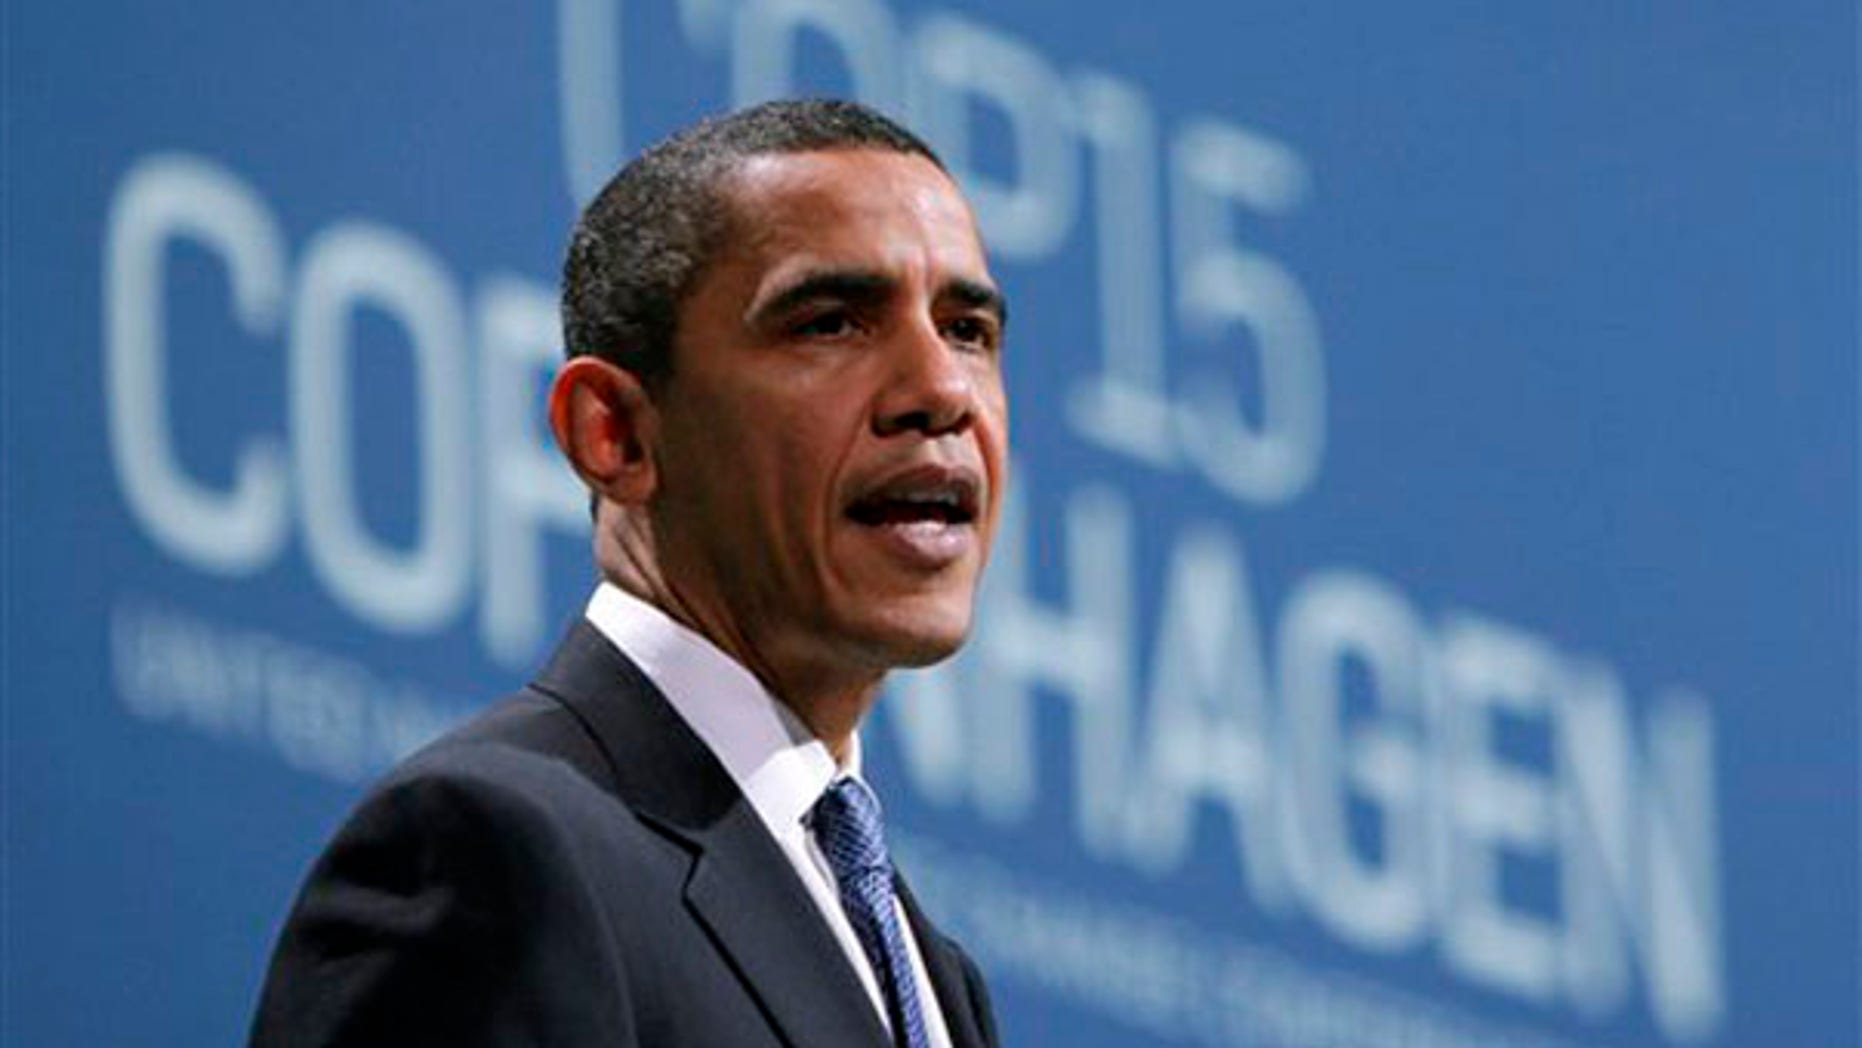 President Obama speaks during the plenary session at the climate summit in Copenhagen, Denmark, Dec. 18. (AP Photo)